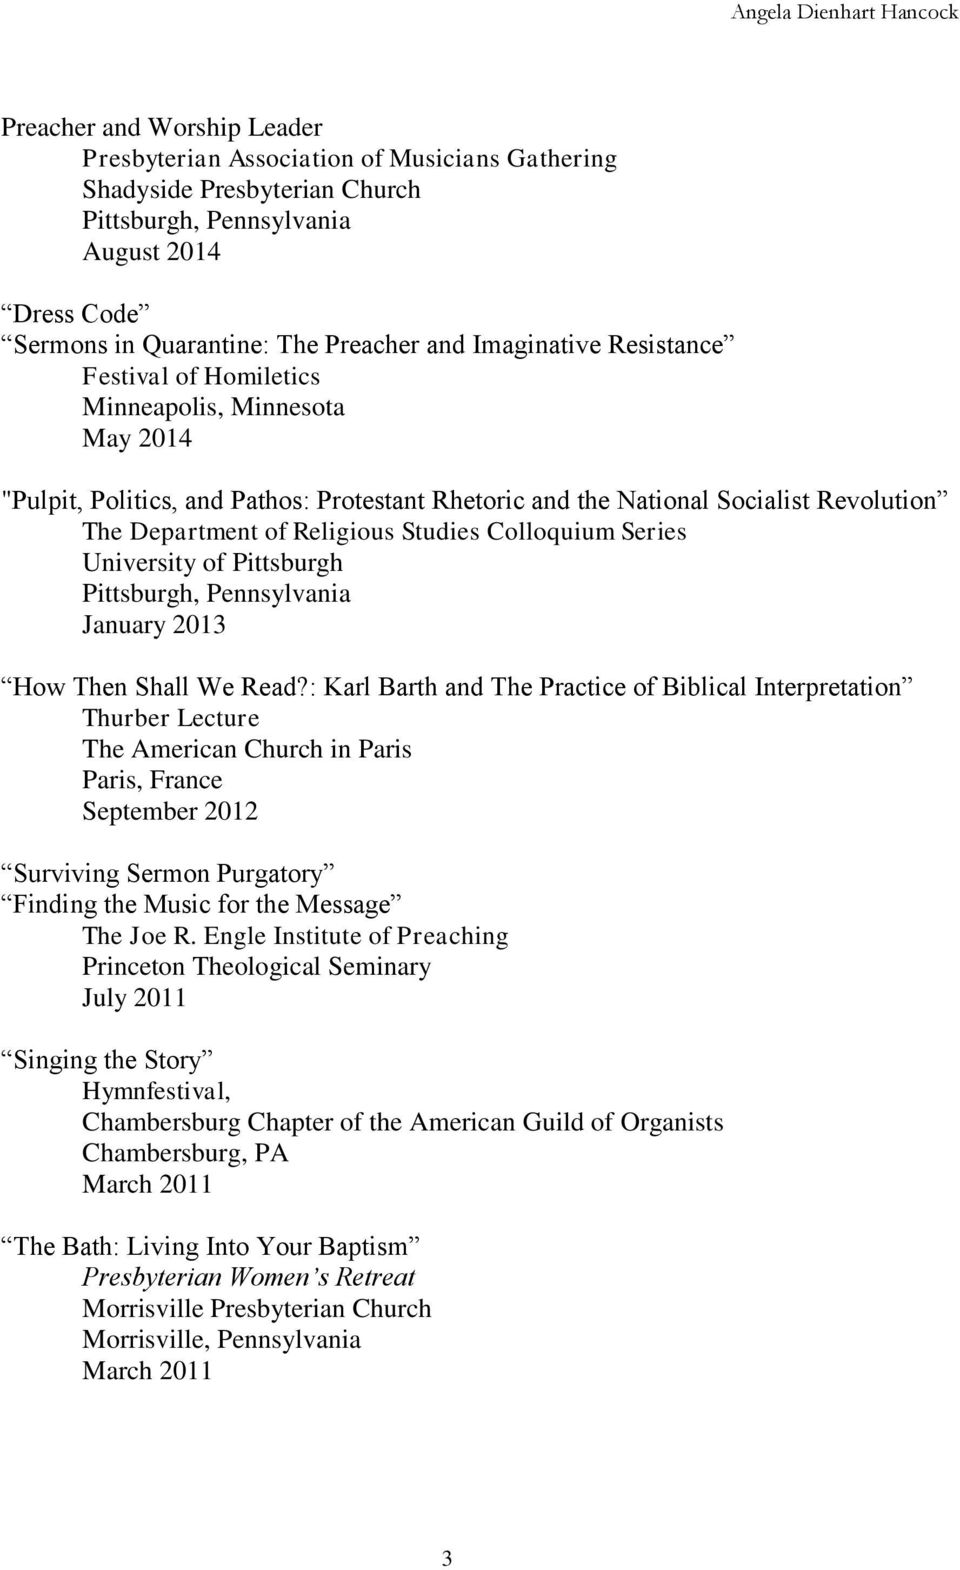 Studies Colloquium Series University of Pittsburgh Pittsburgh, Pennsylvania January 2013 How Then Shall We Read?